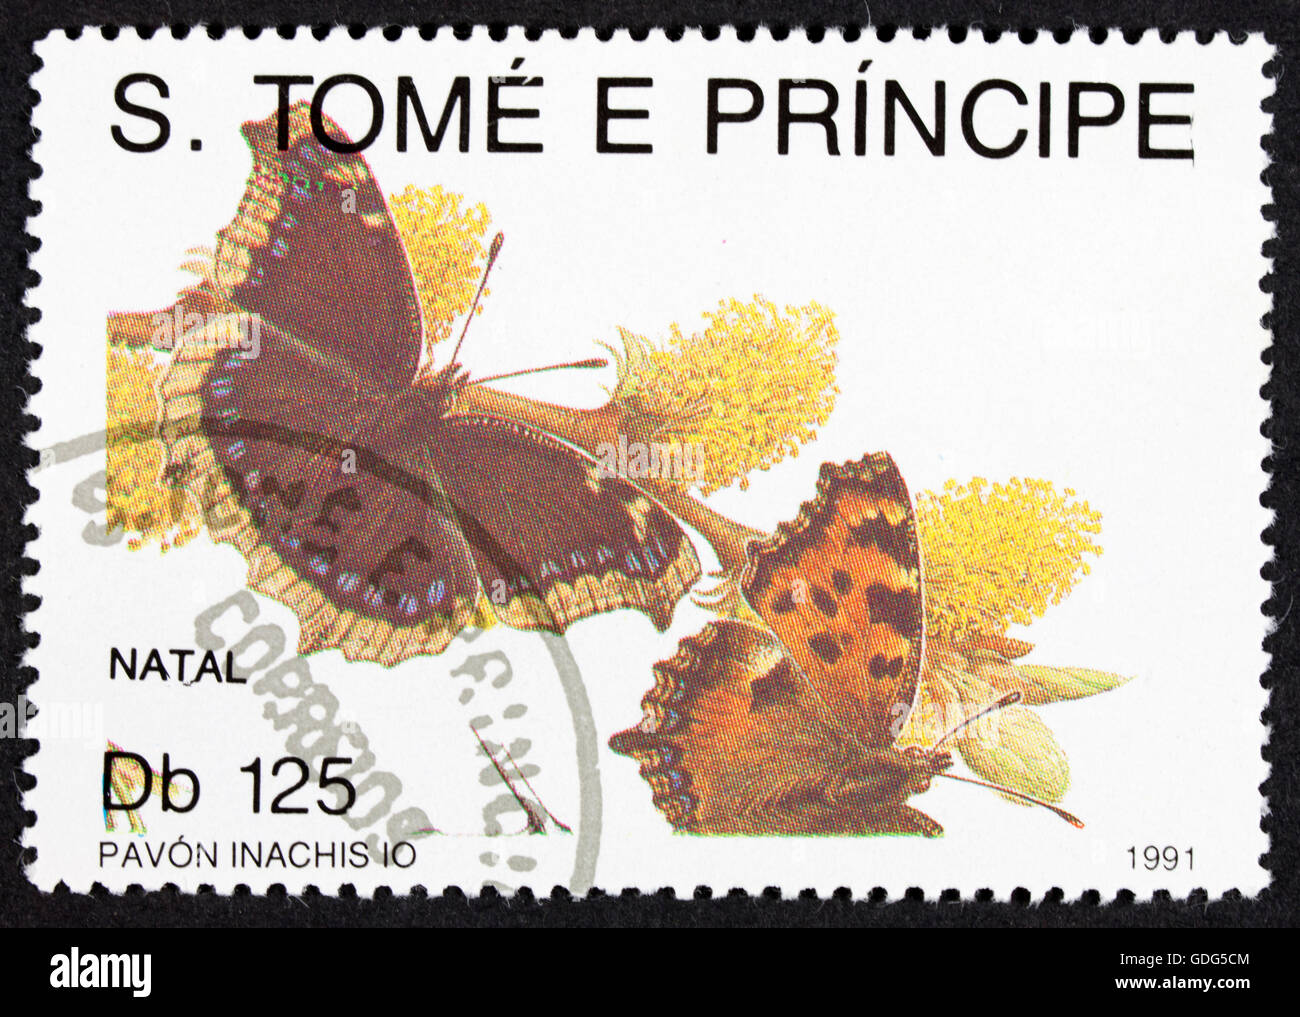 GROOTEBROEK ,THE NETHERLANDS - MARCH 20,2016 : A stamp printed by Sao Tome e Principe, shows butterfly, circa 1991 - Stock Image